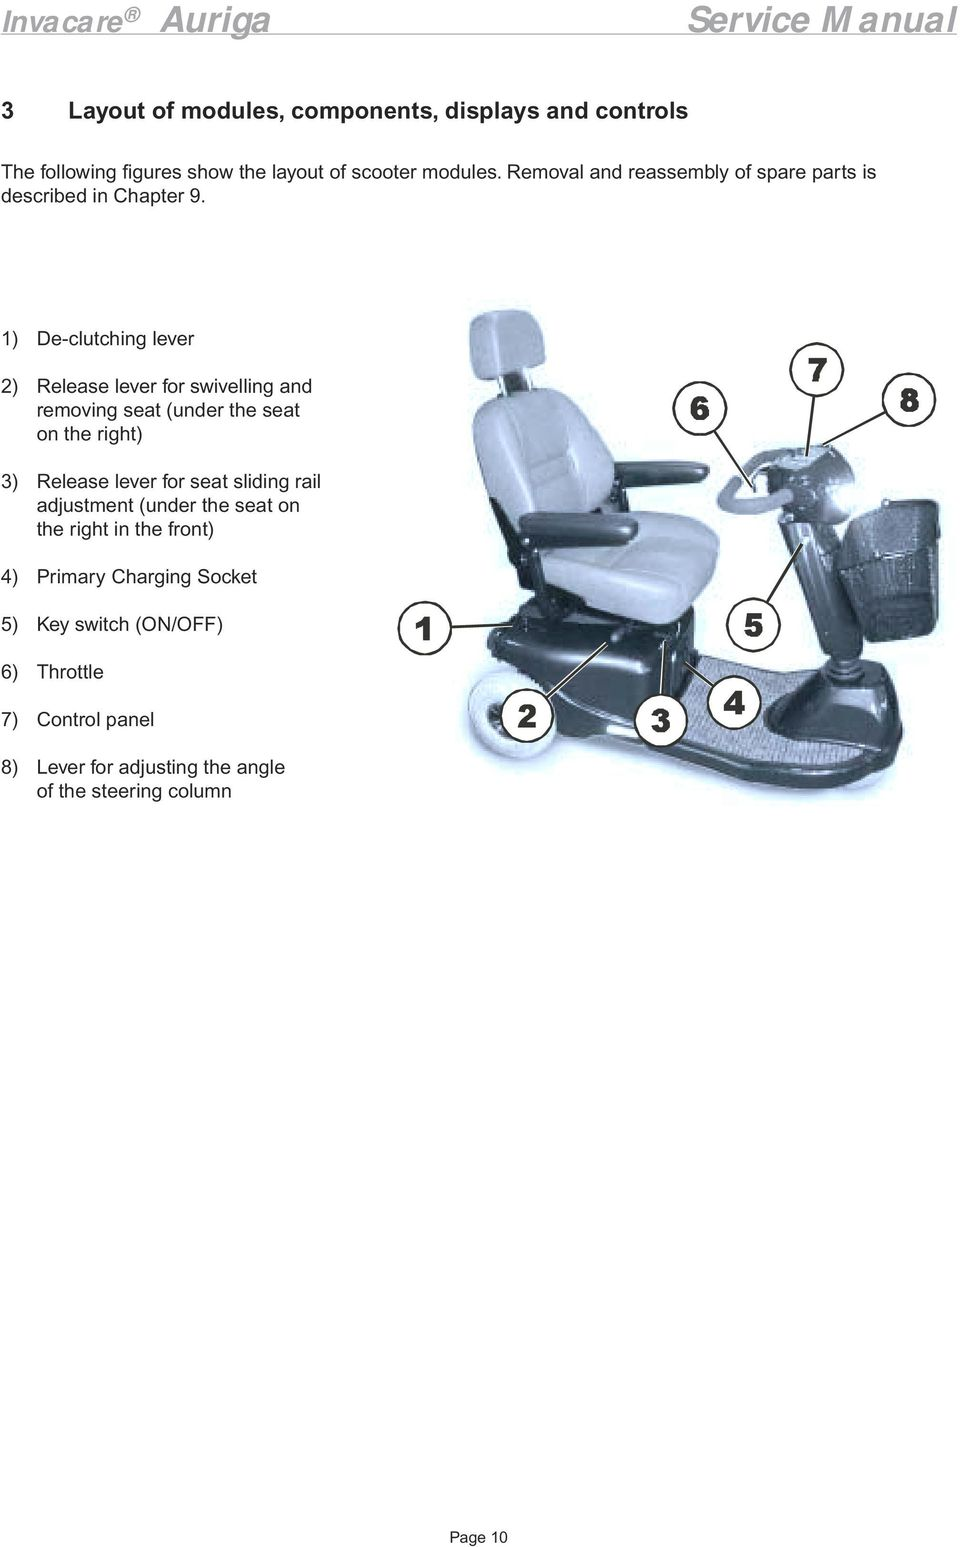 Invacare Auriga Service Manual 6 10 Km H Version Pdf 2008 C350 Fuse Box De Clutching Lever Release For Swivelling And Removing Seat Under The